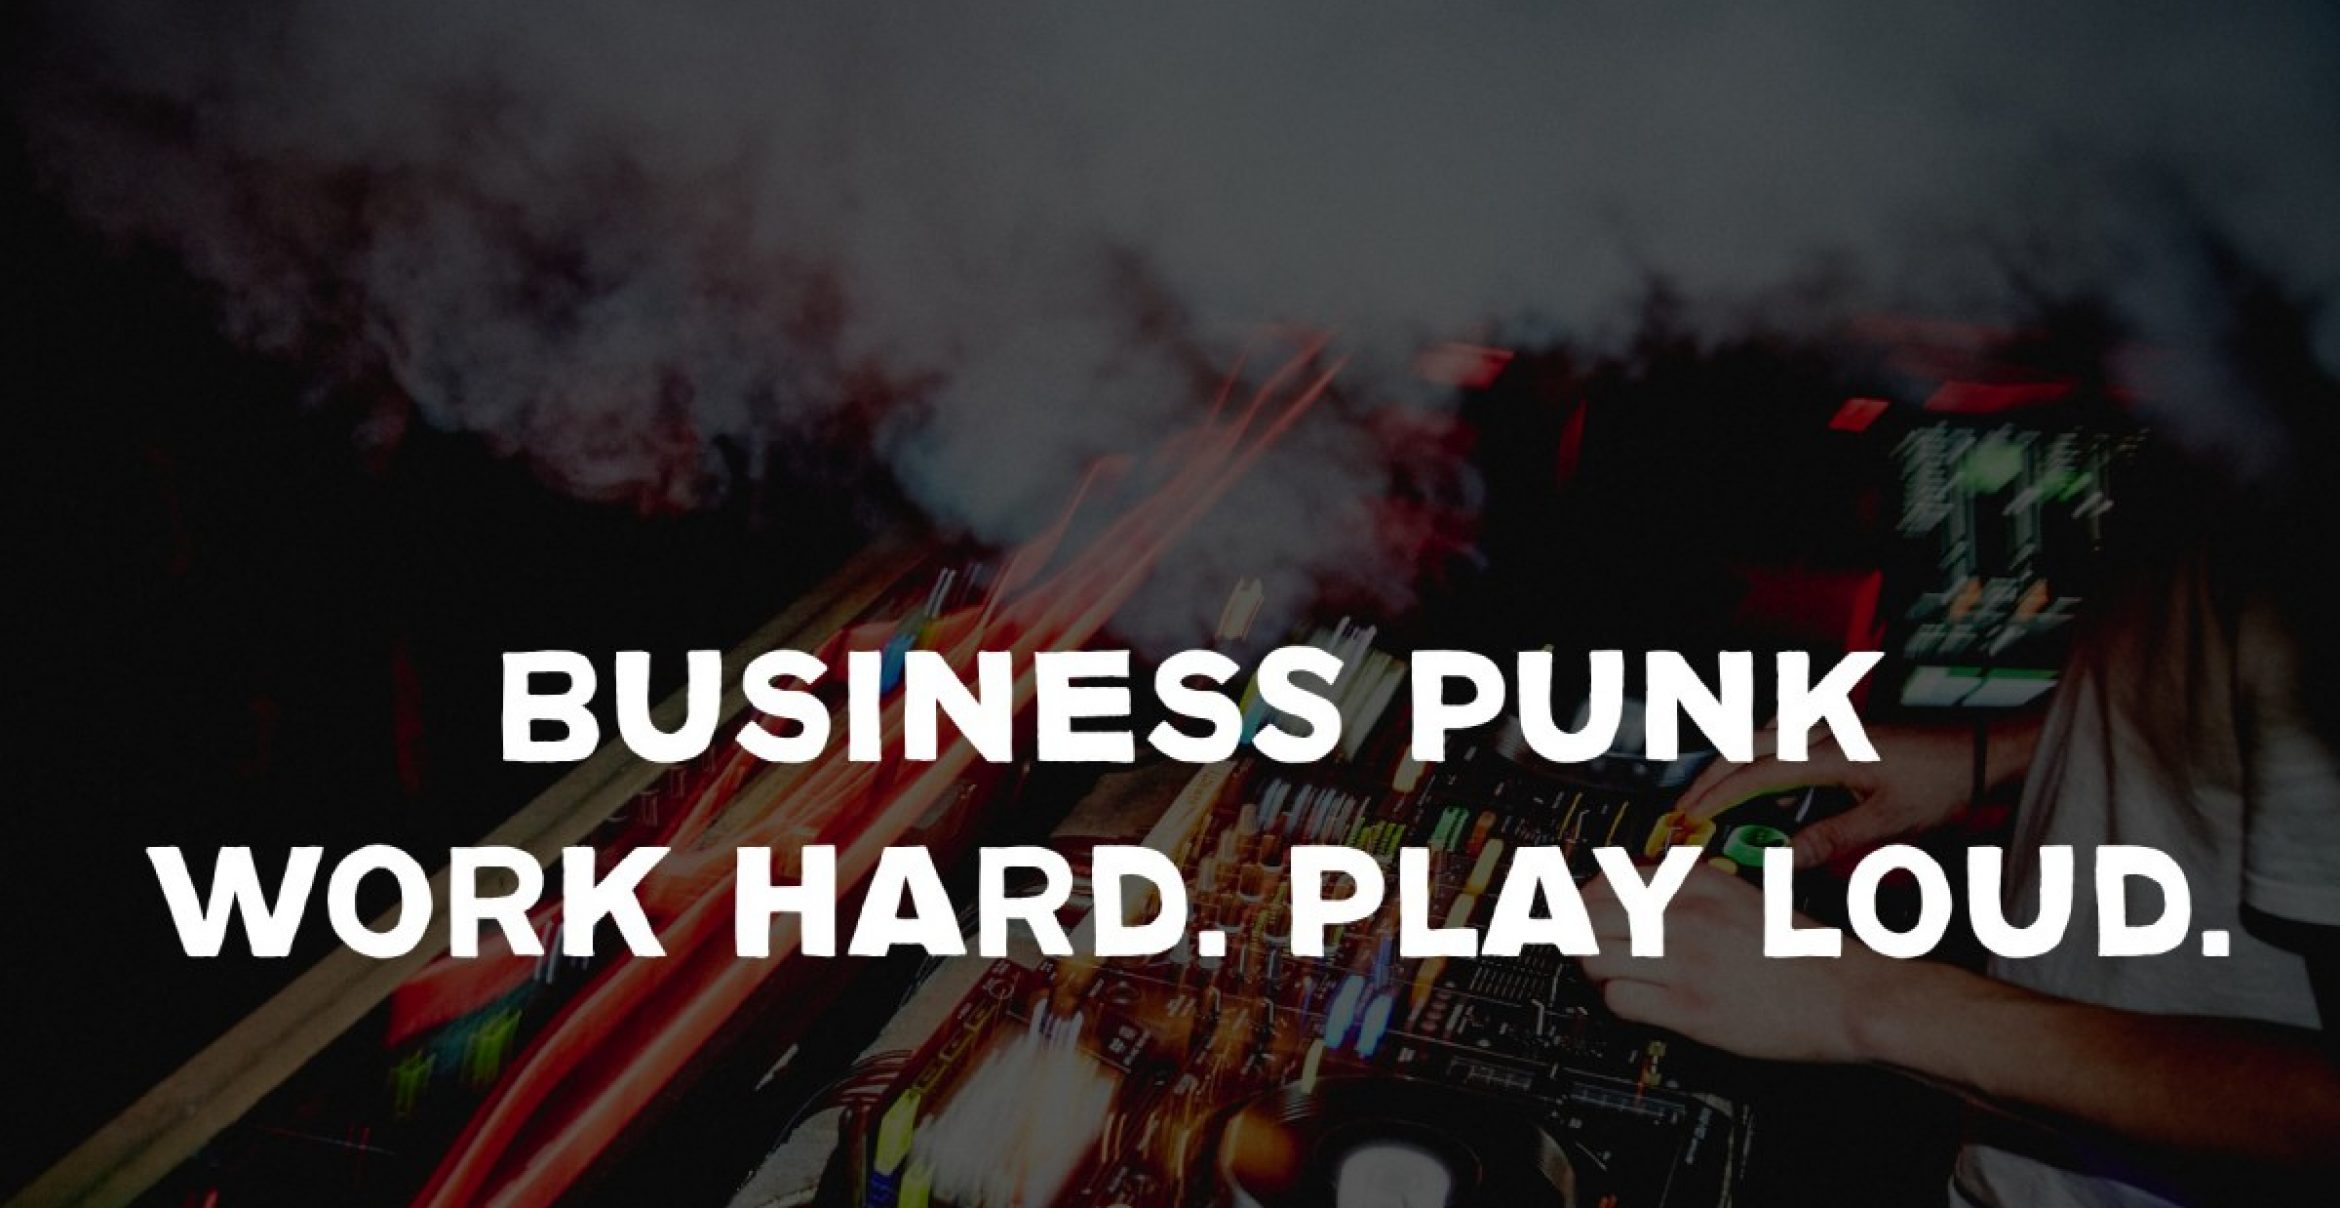 Work Hard. Play Loud. Business Punk Release-Party am 02.12.15 in Hamburg